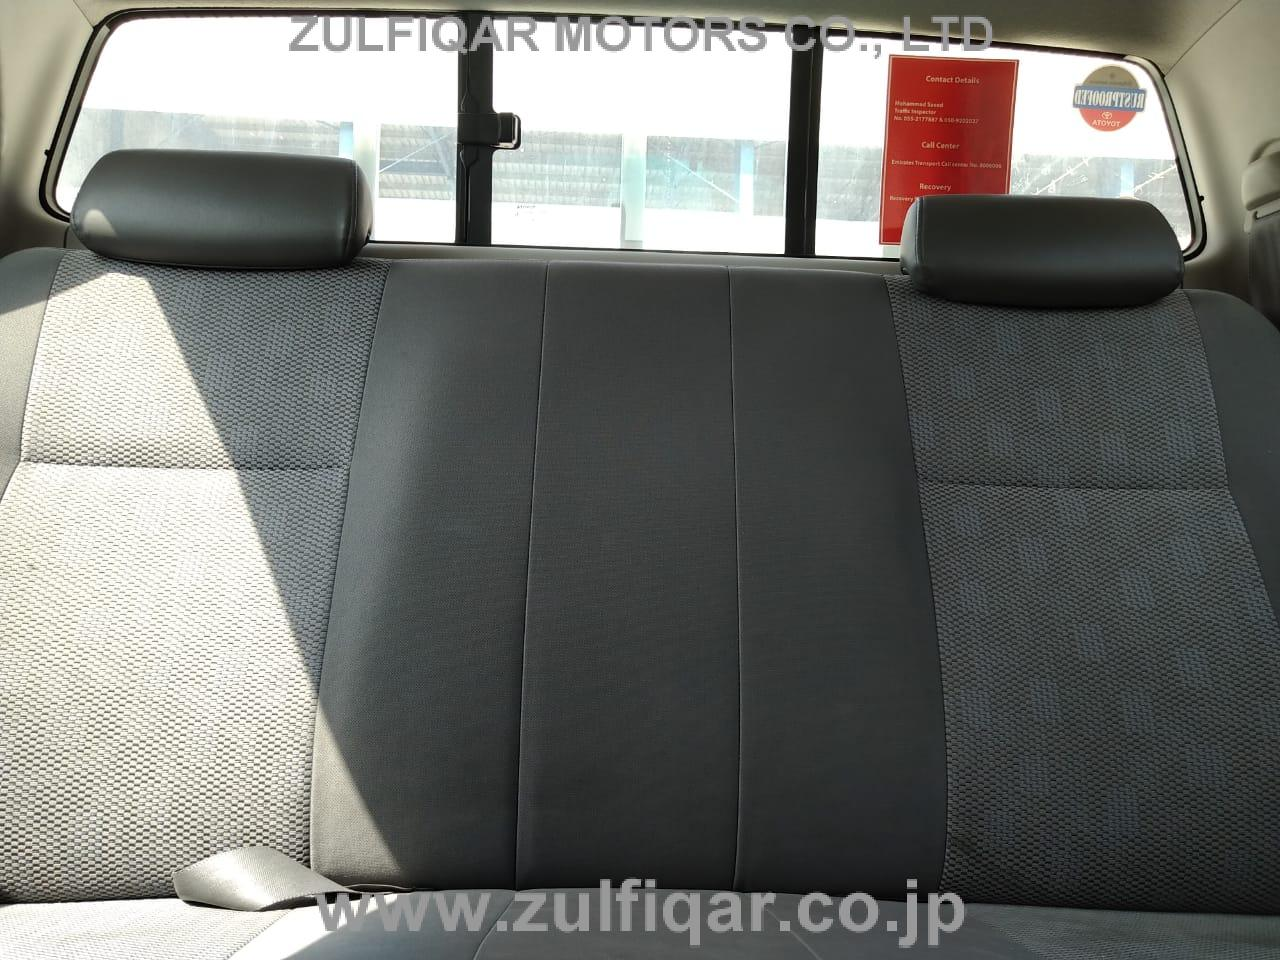 TOYOTA HILUX PICK UP 2015 Image 22